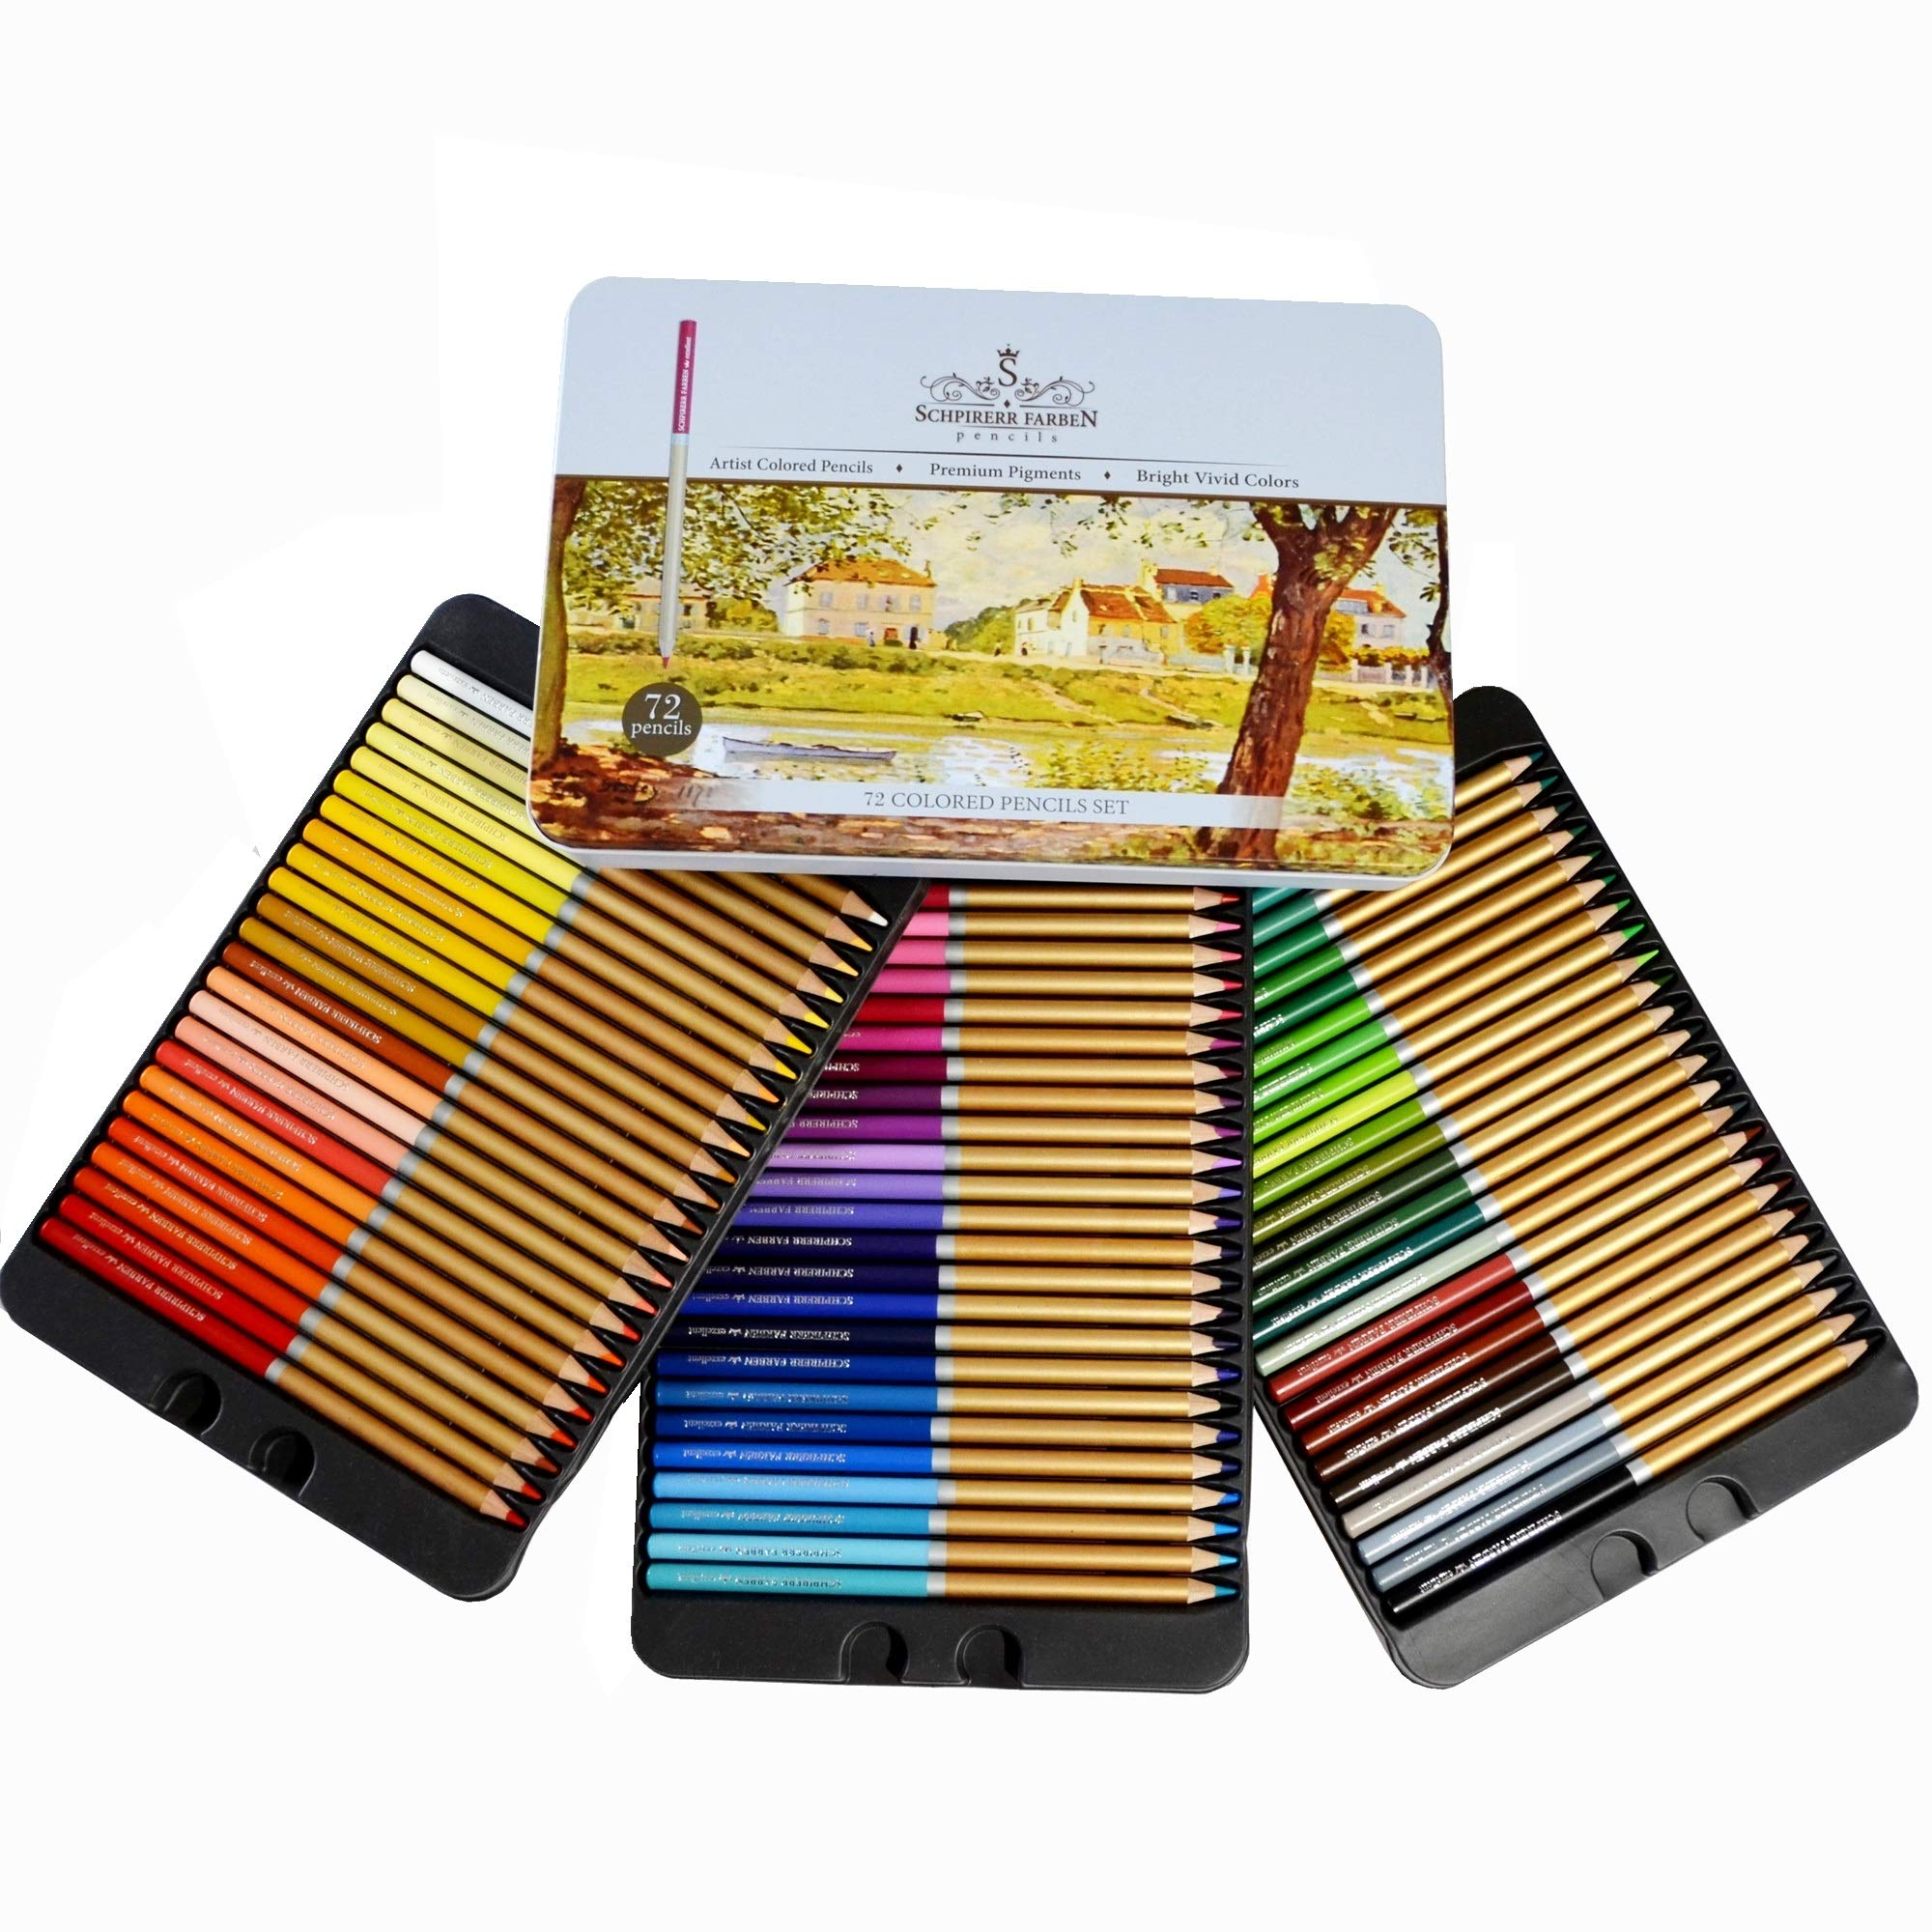 Professional Premium numbered 72 Colored Pencils Set Schpirerr Farben - Oil Based Soft Core, Ideal For Adults, Artists, Sketchers & Children - Coloring Sketching & Doodling by GOODYISM